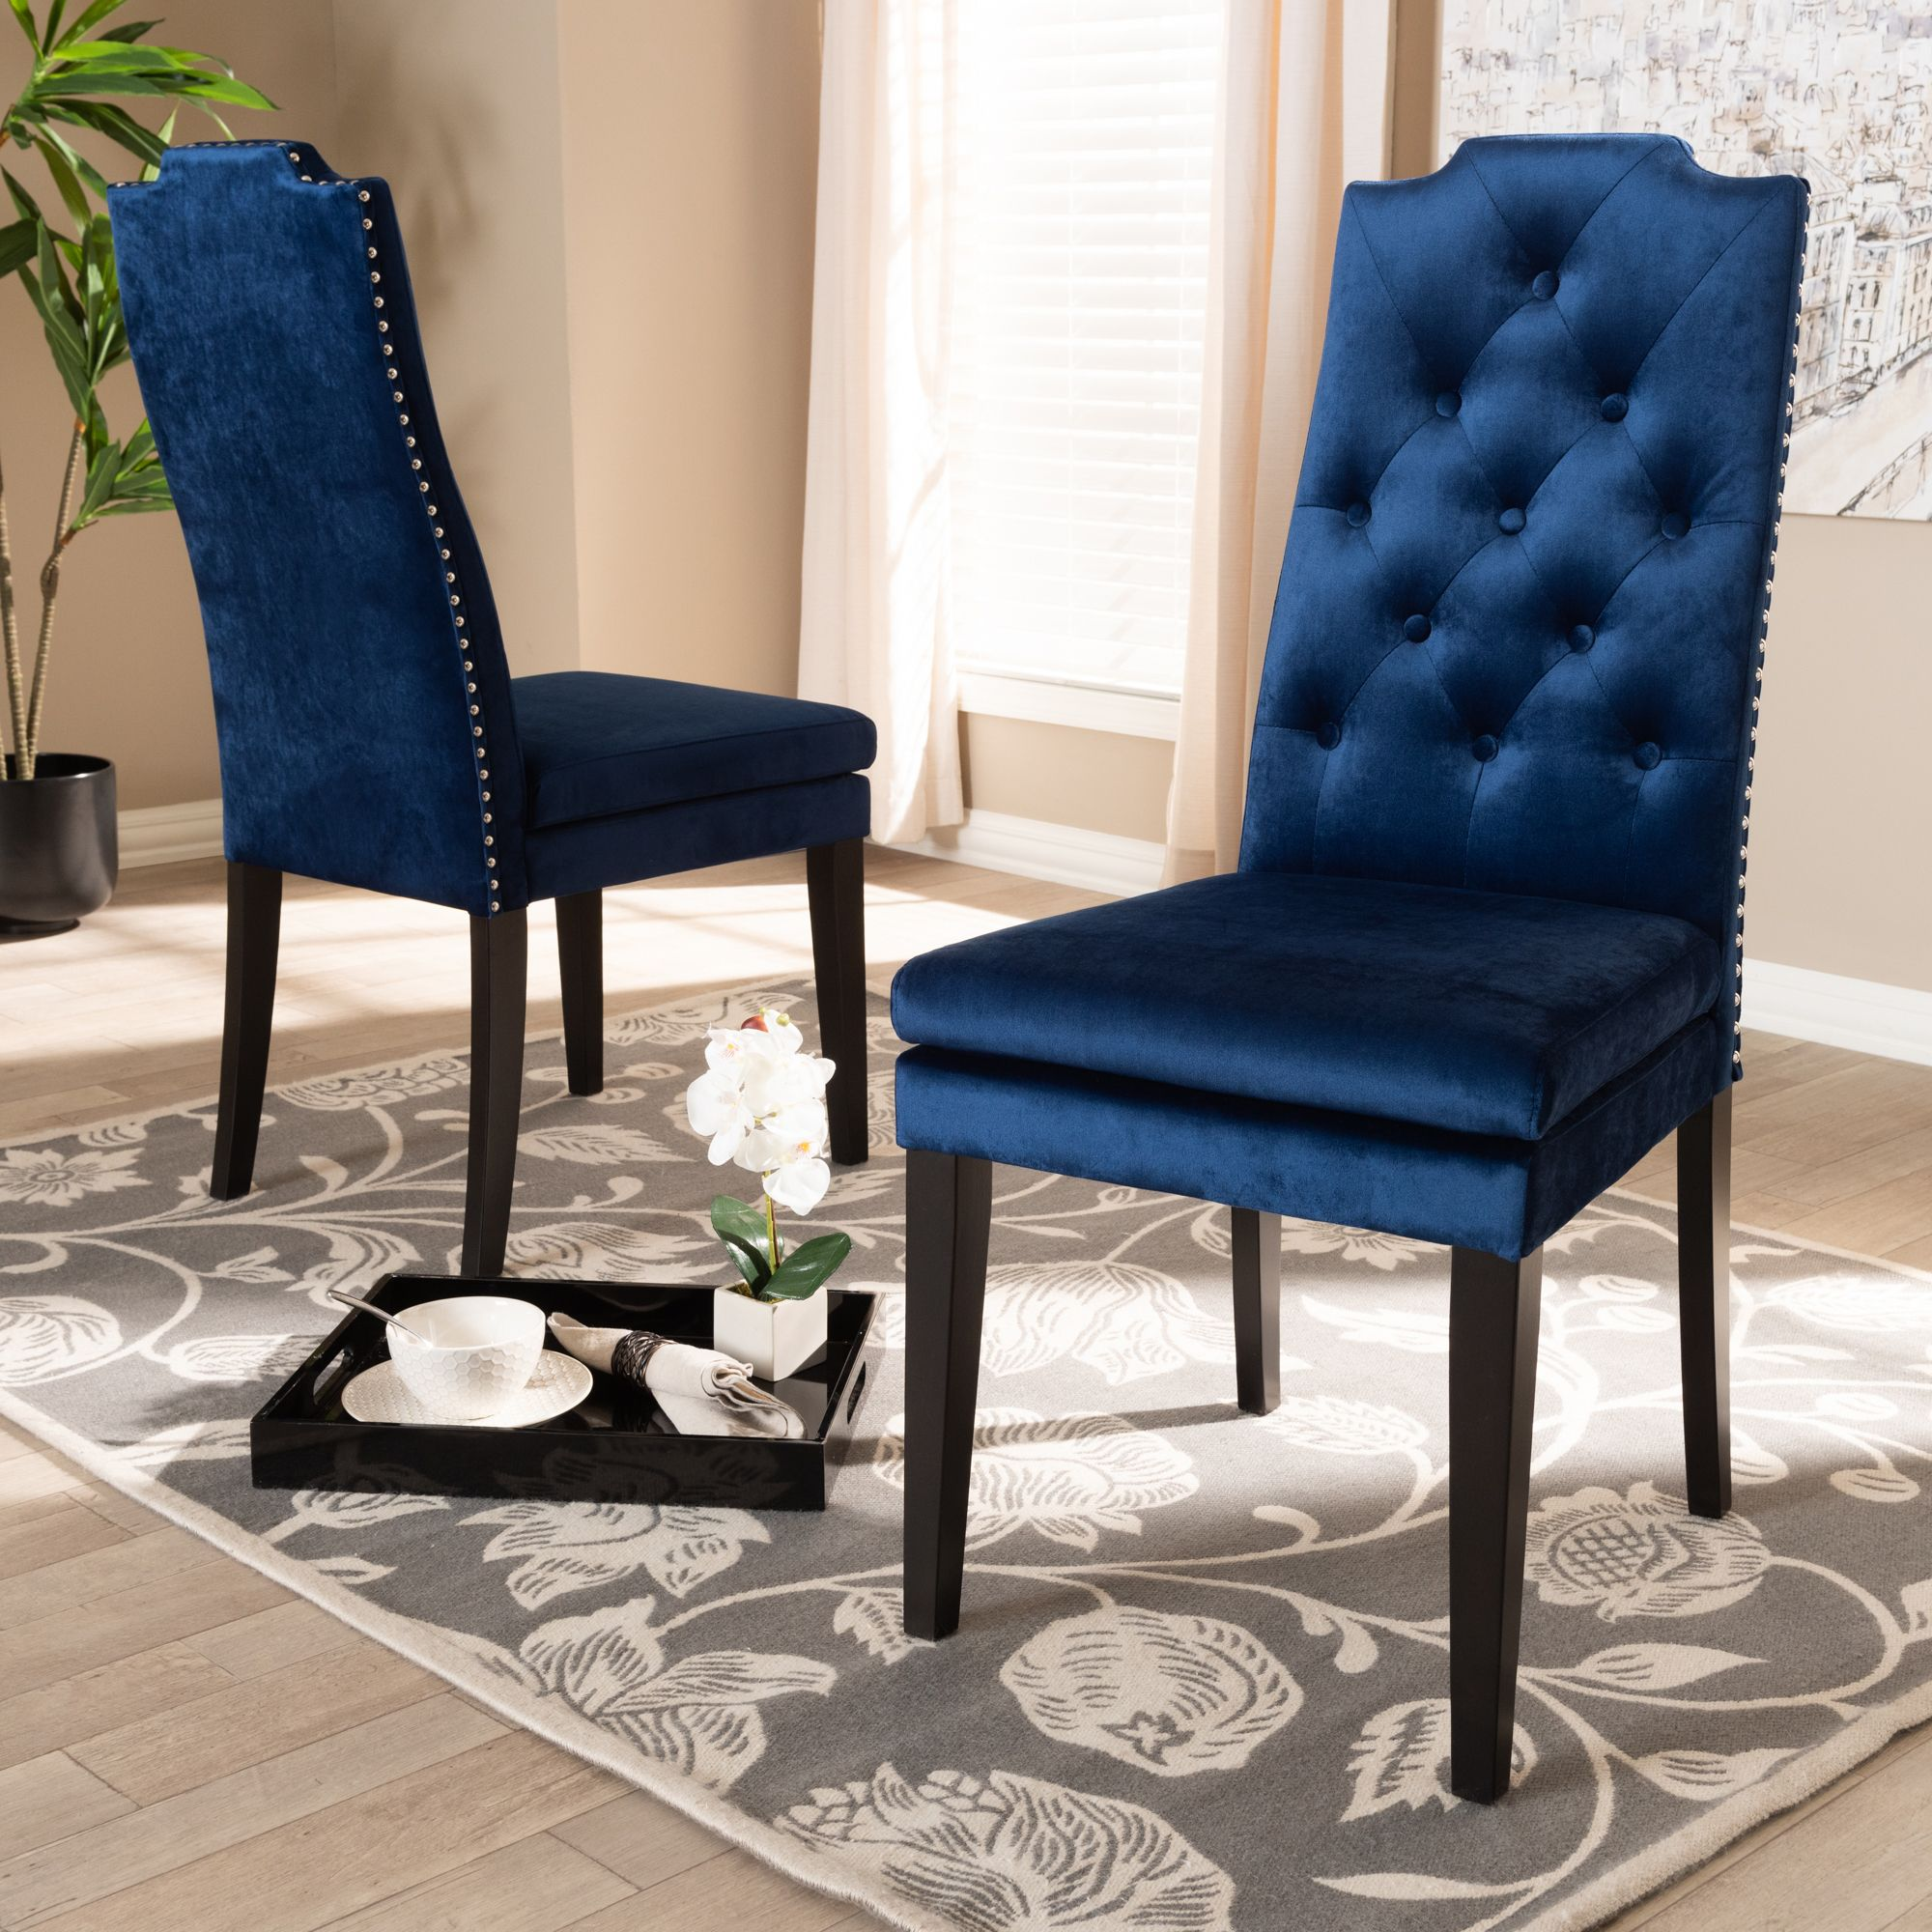 Baxton Studio Dylin Modern and Contemporary Navy Blue